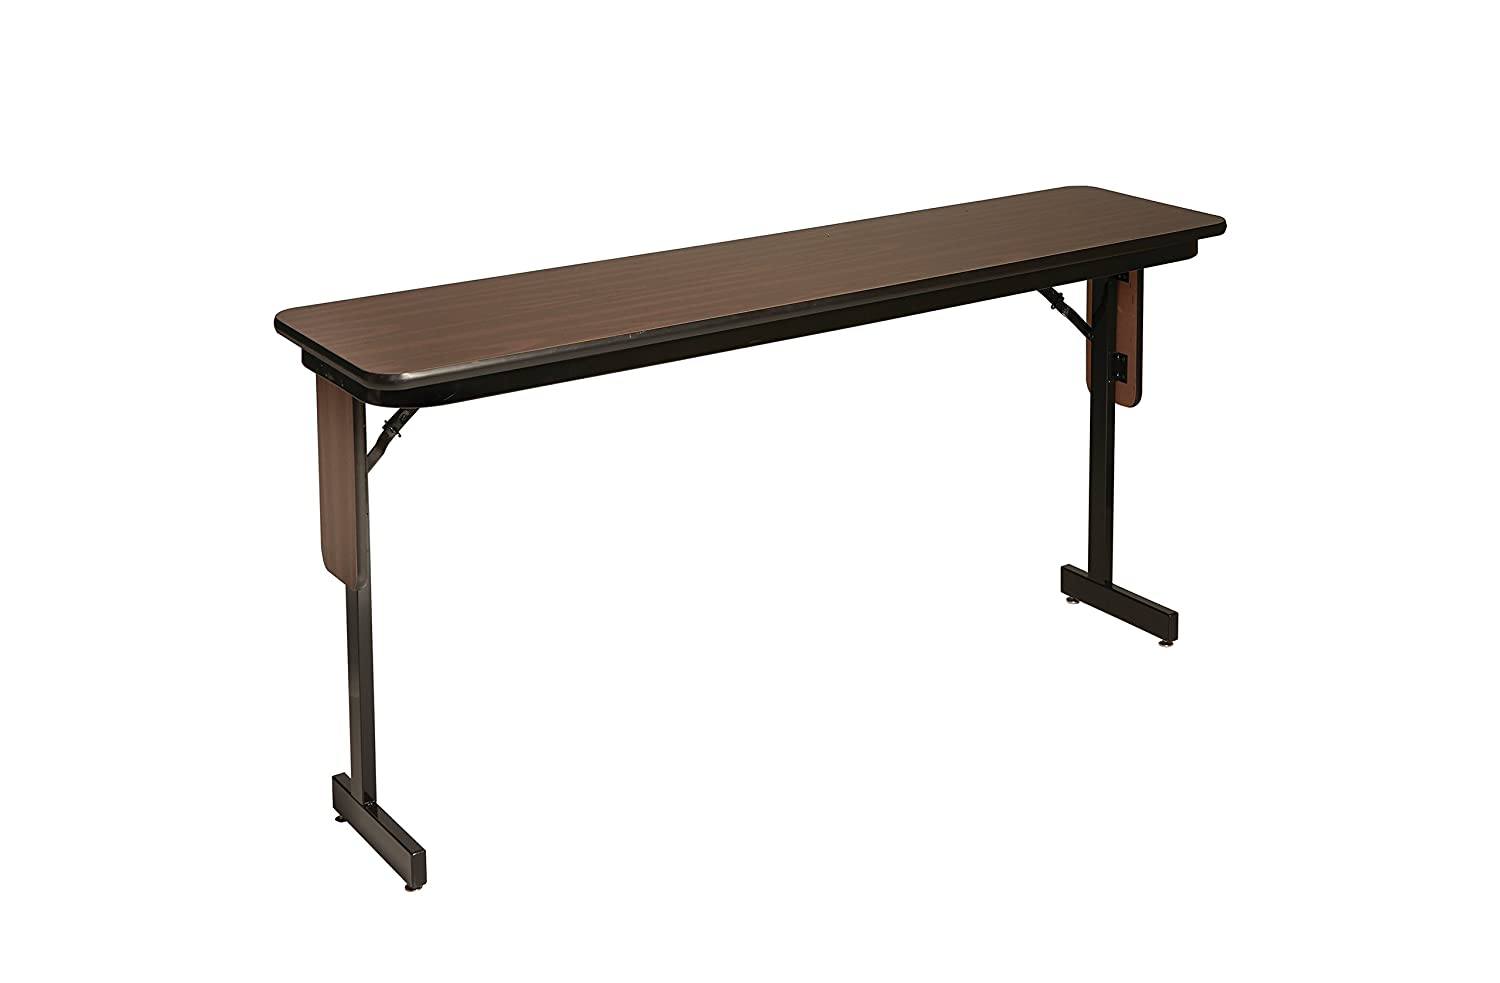 Correll SPA1860PX-01 Adjustable Height Folding Seminar Table with Panel Leg, Rectangular Top, 18 Height, 22-30 Wide, 60 Length, Walnut